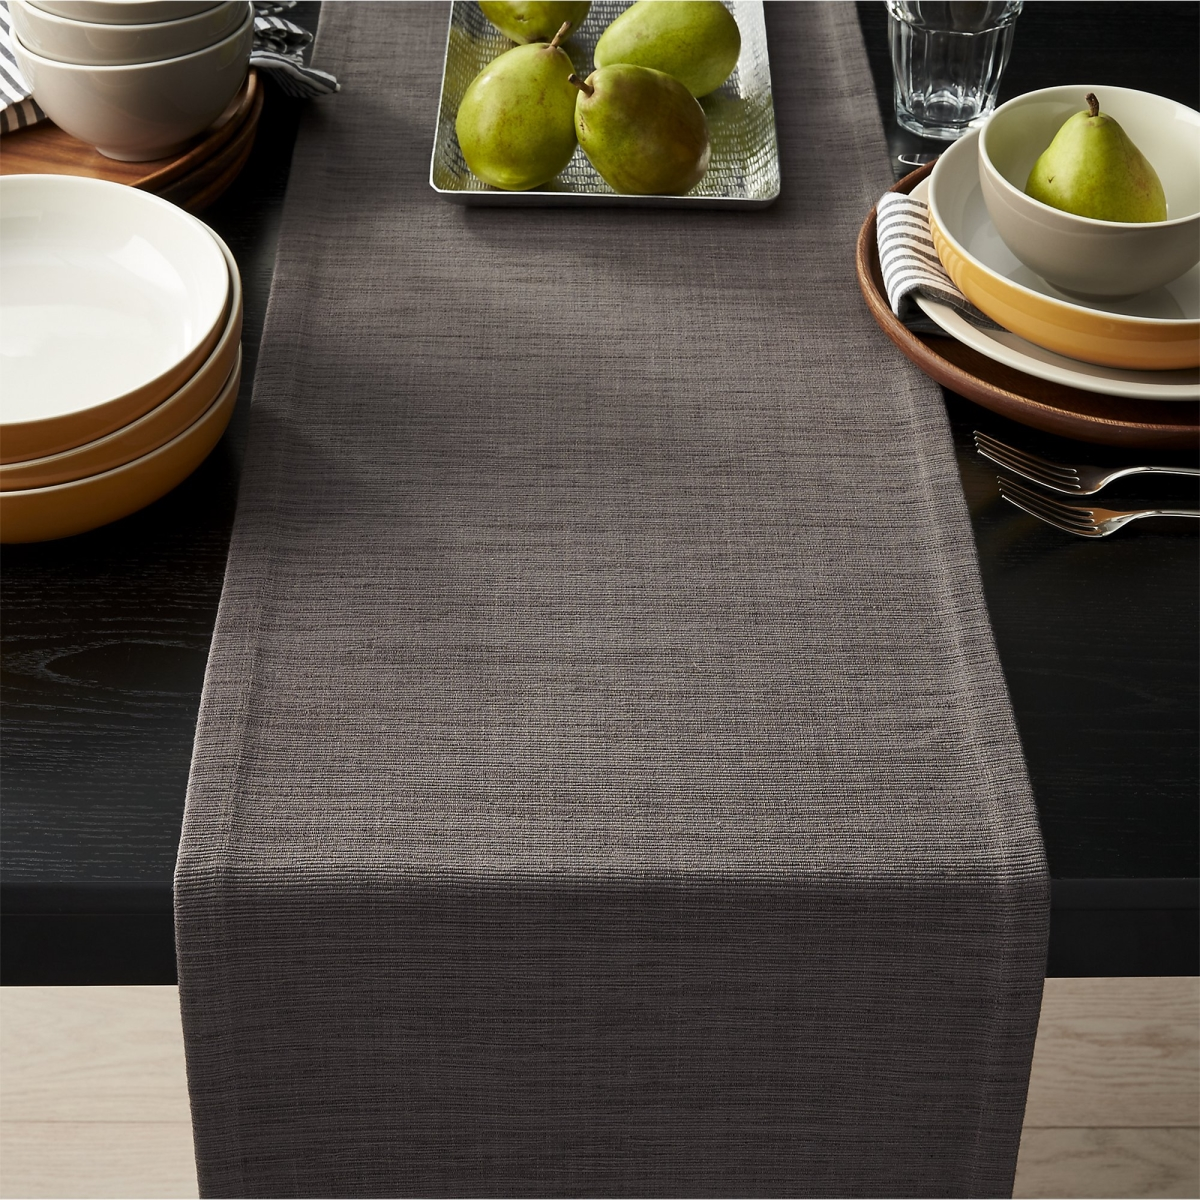 Deep grey table runner